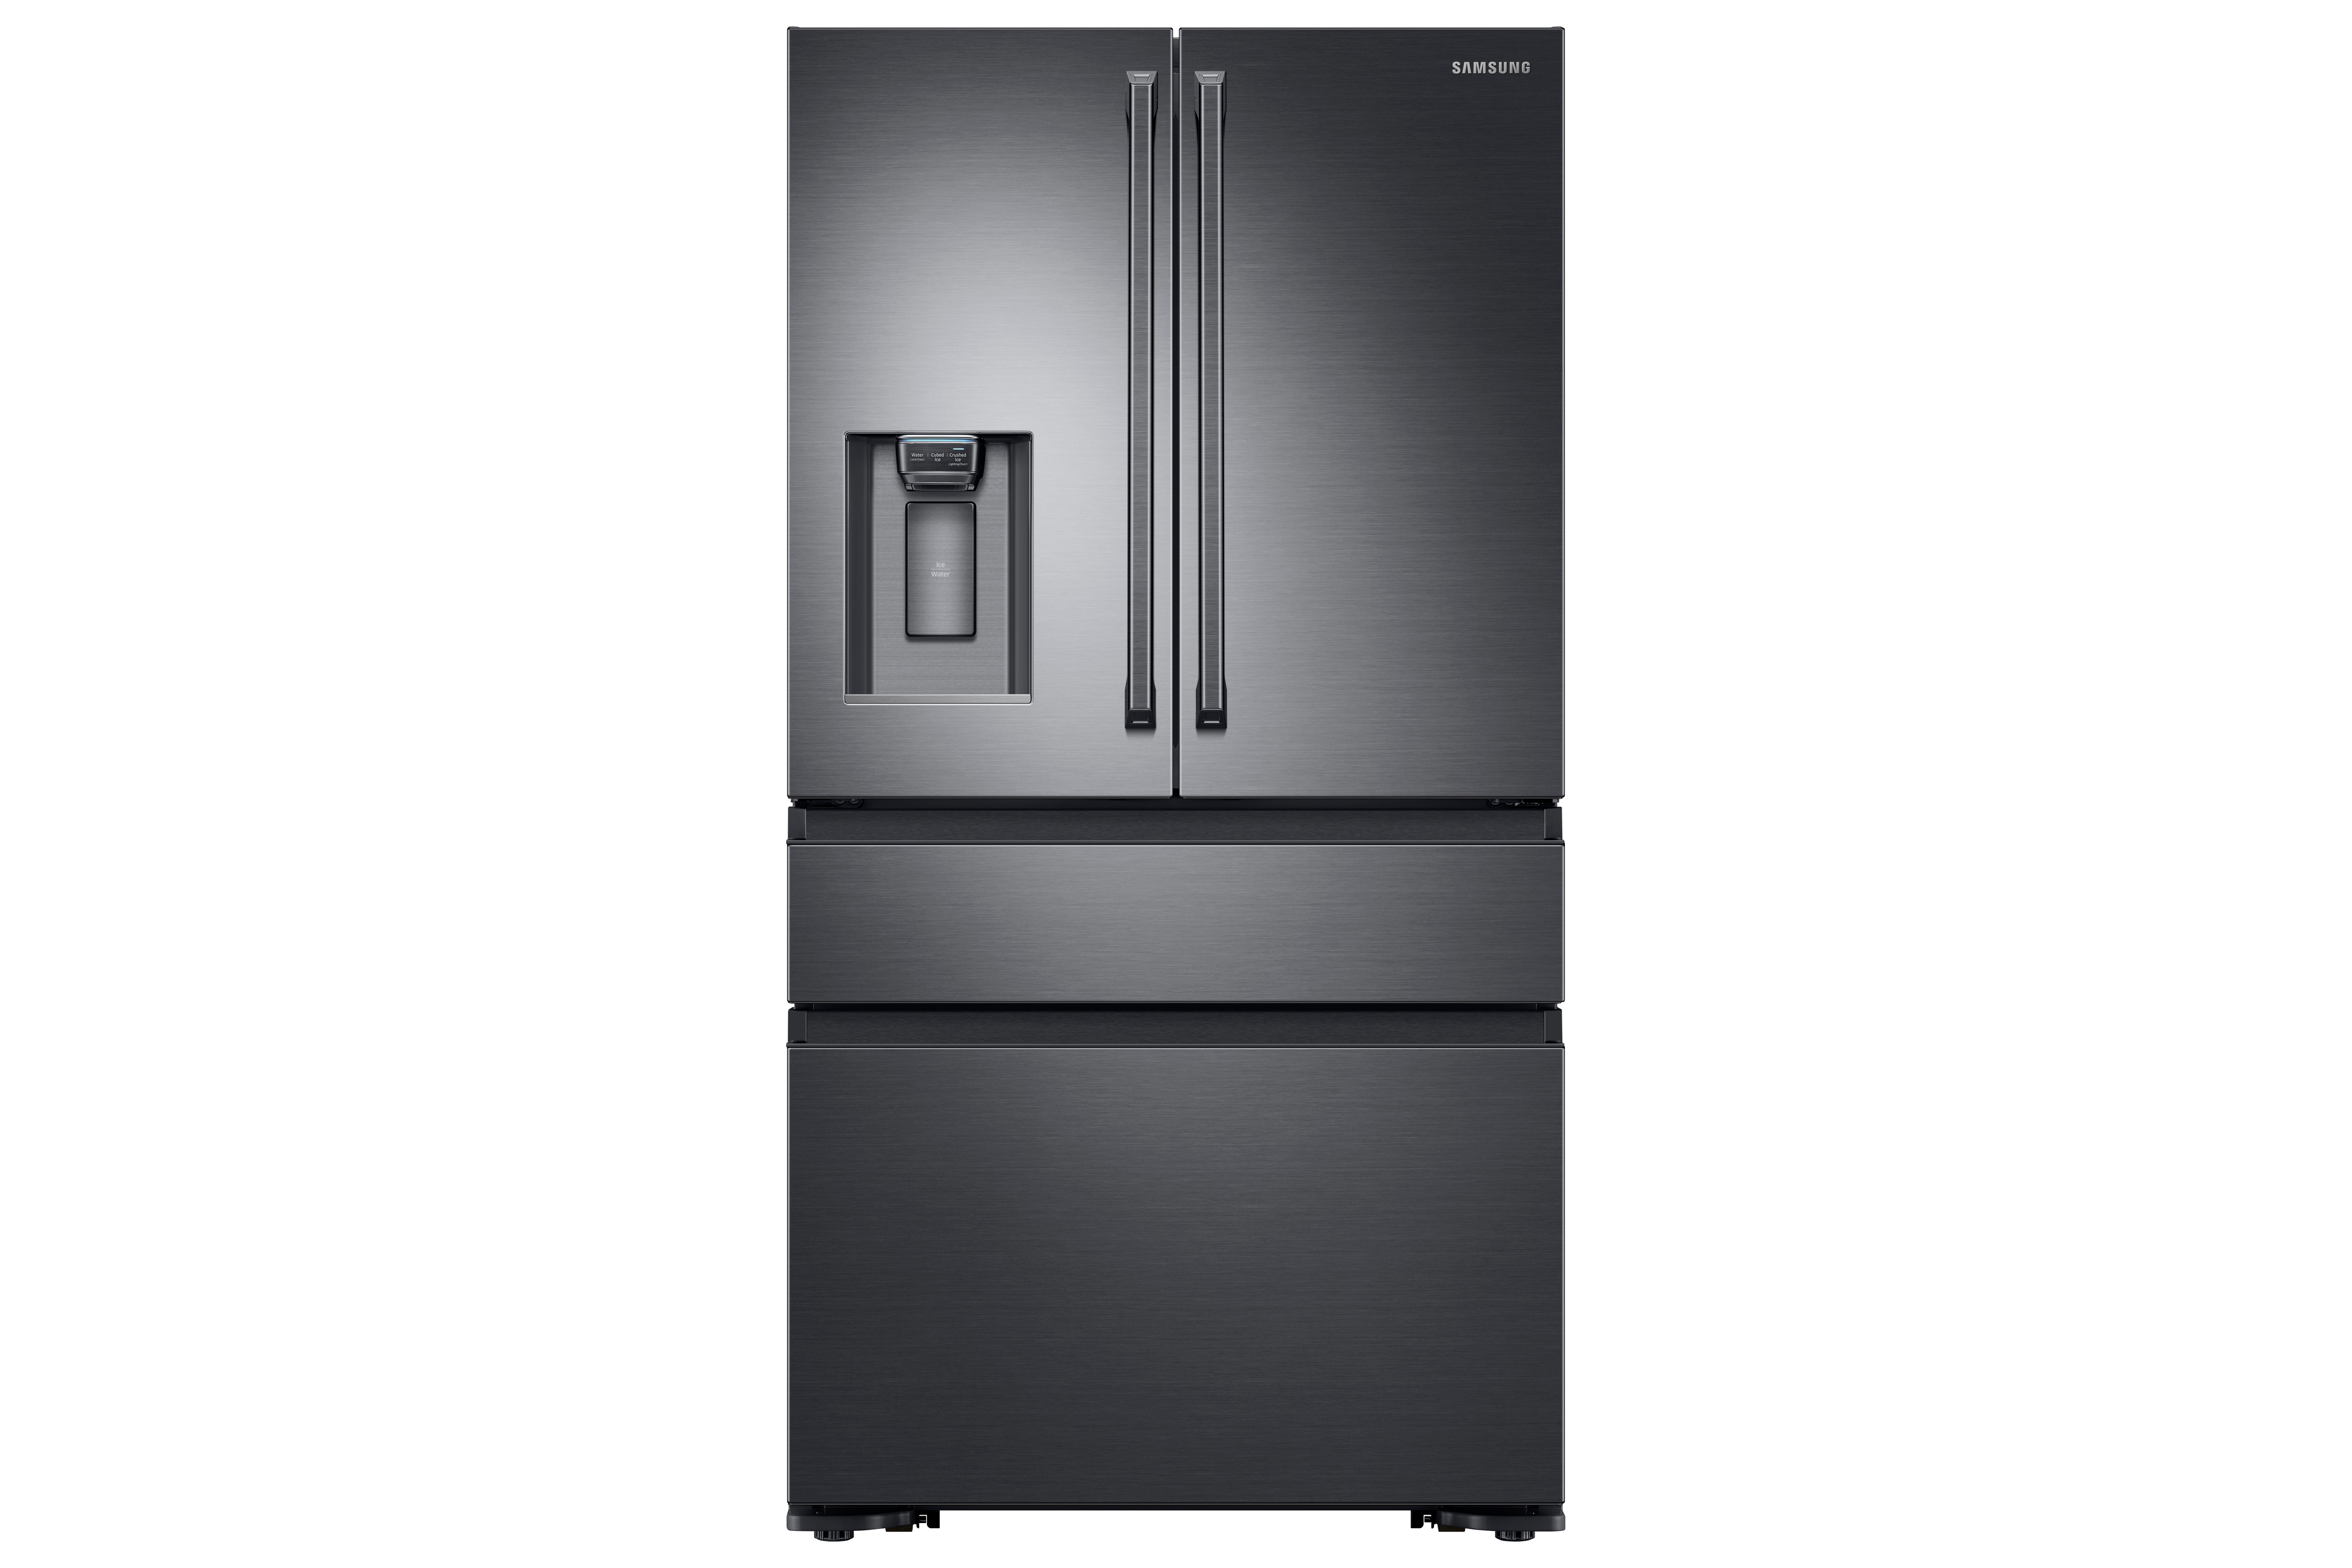 Shop 23 cu. ft. Counter Depth 4-Door French Door Refrigerator with Polygon Handles in Black Stainless Ste from Samsung on Openhaus